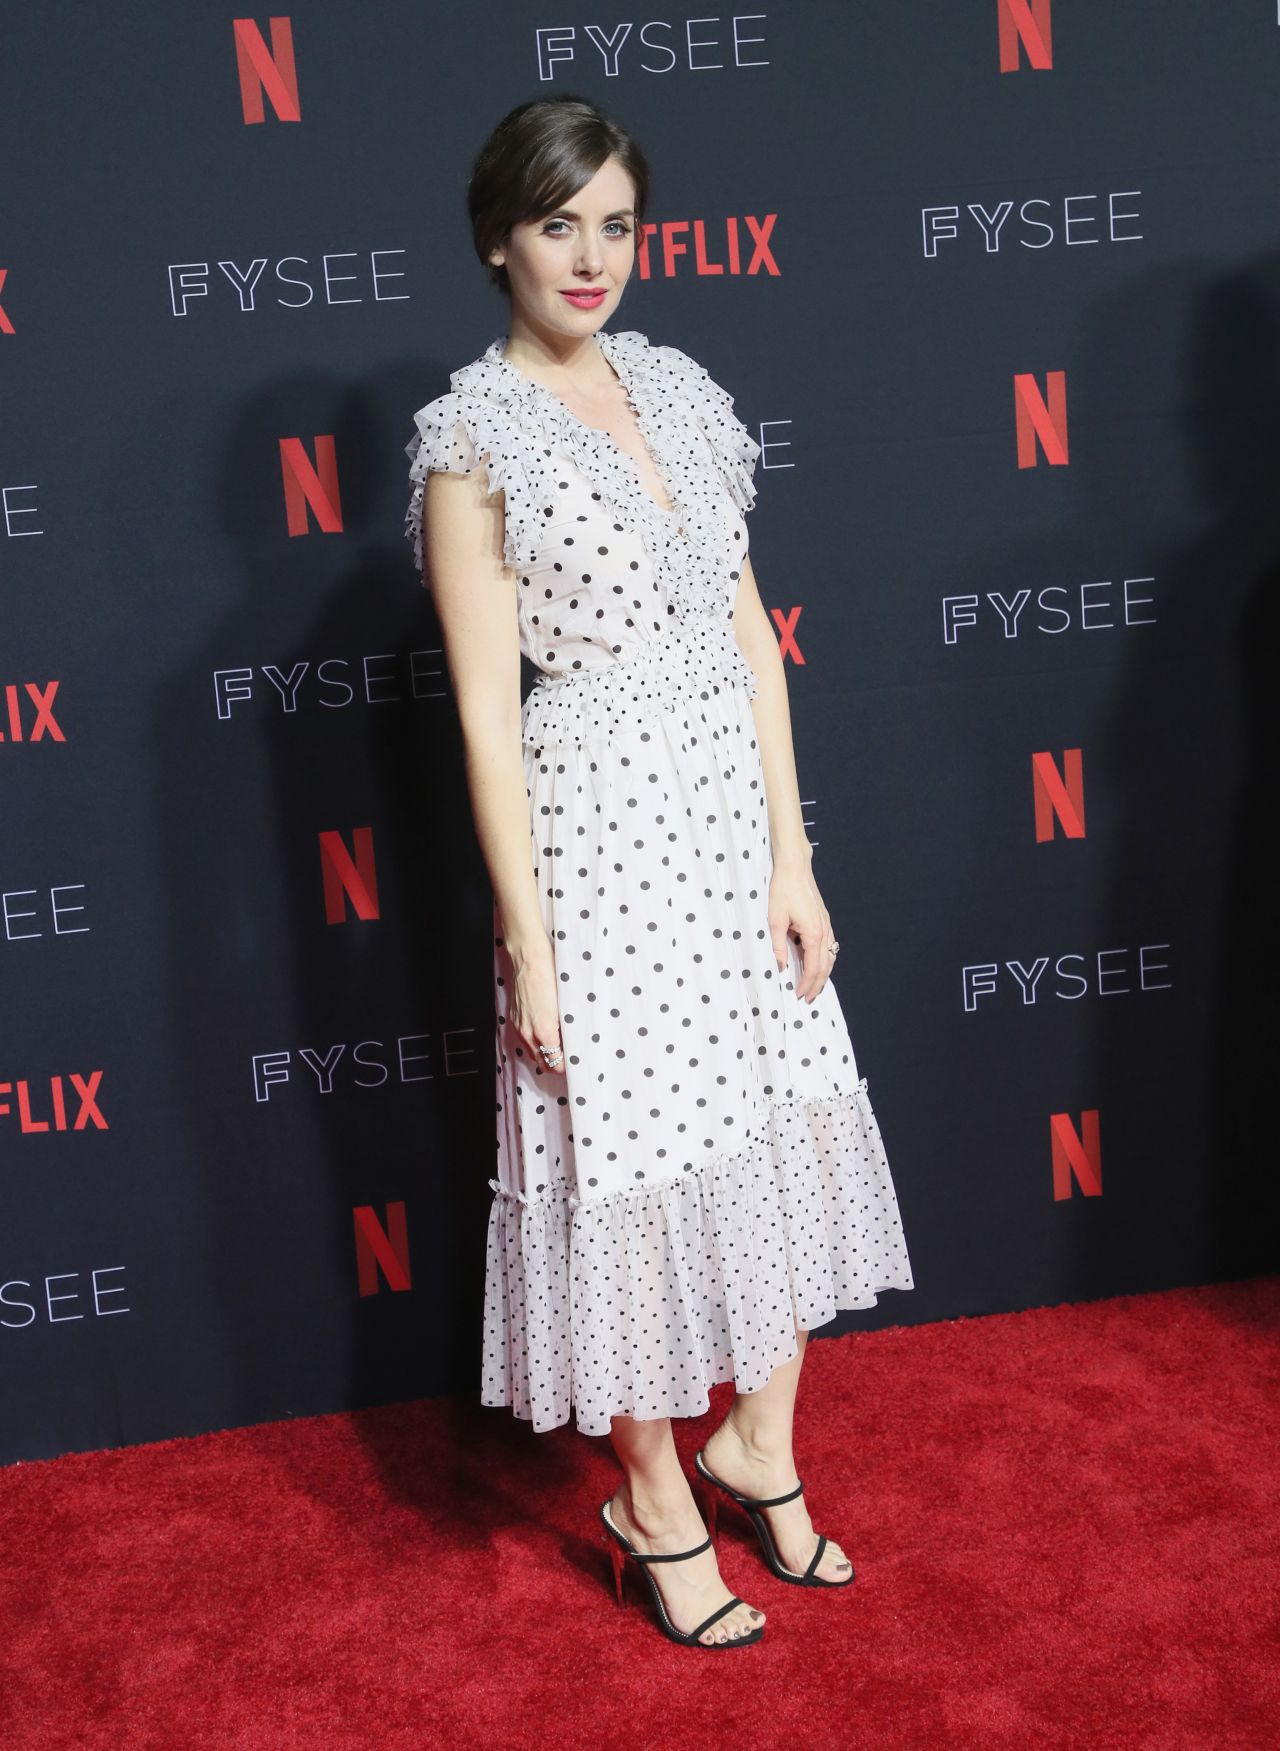 http://celebmafia.com/wp-content/uploads/2018/05/alison-brie-netflix-fysee-kick-off-event-in-los-angeles-05-06-2018-2.jpg